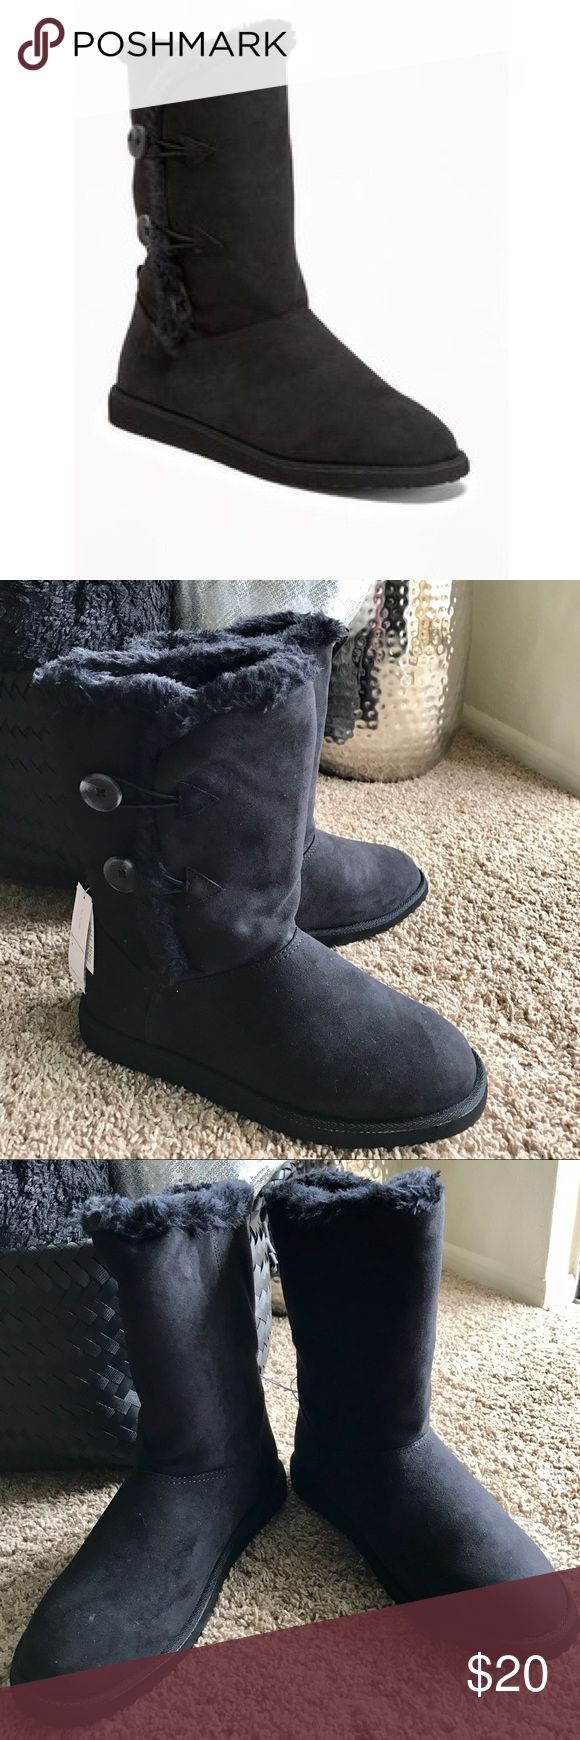 Old Navy Womens Tall Sherpa Lined Boots Old Navy Sturdy -4858